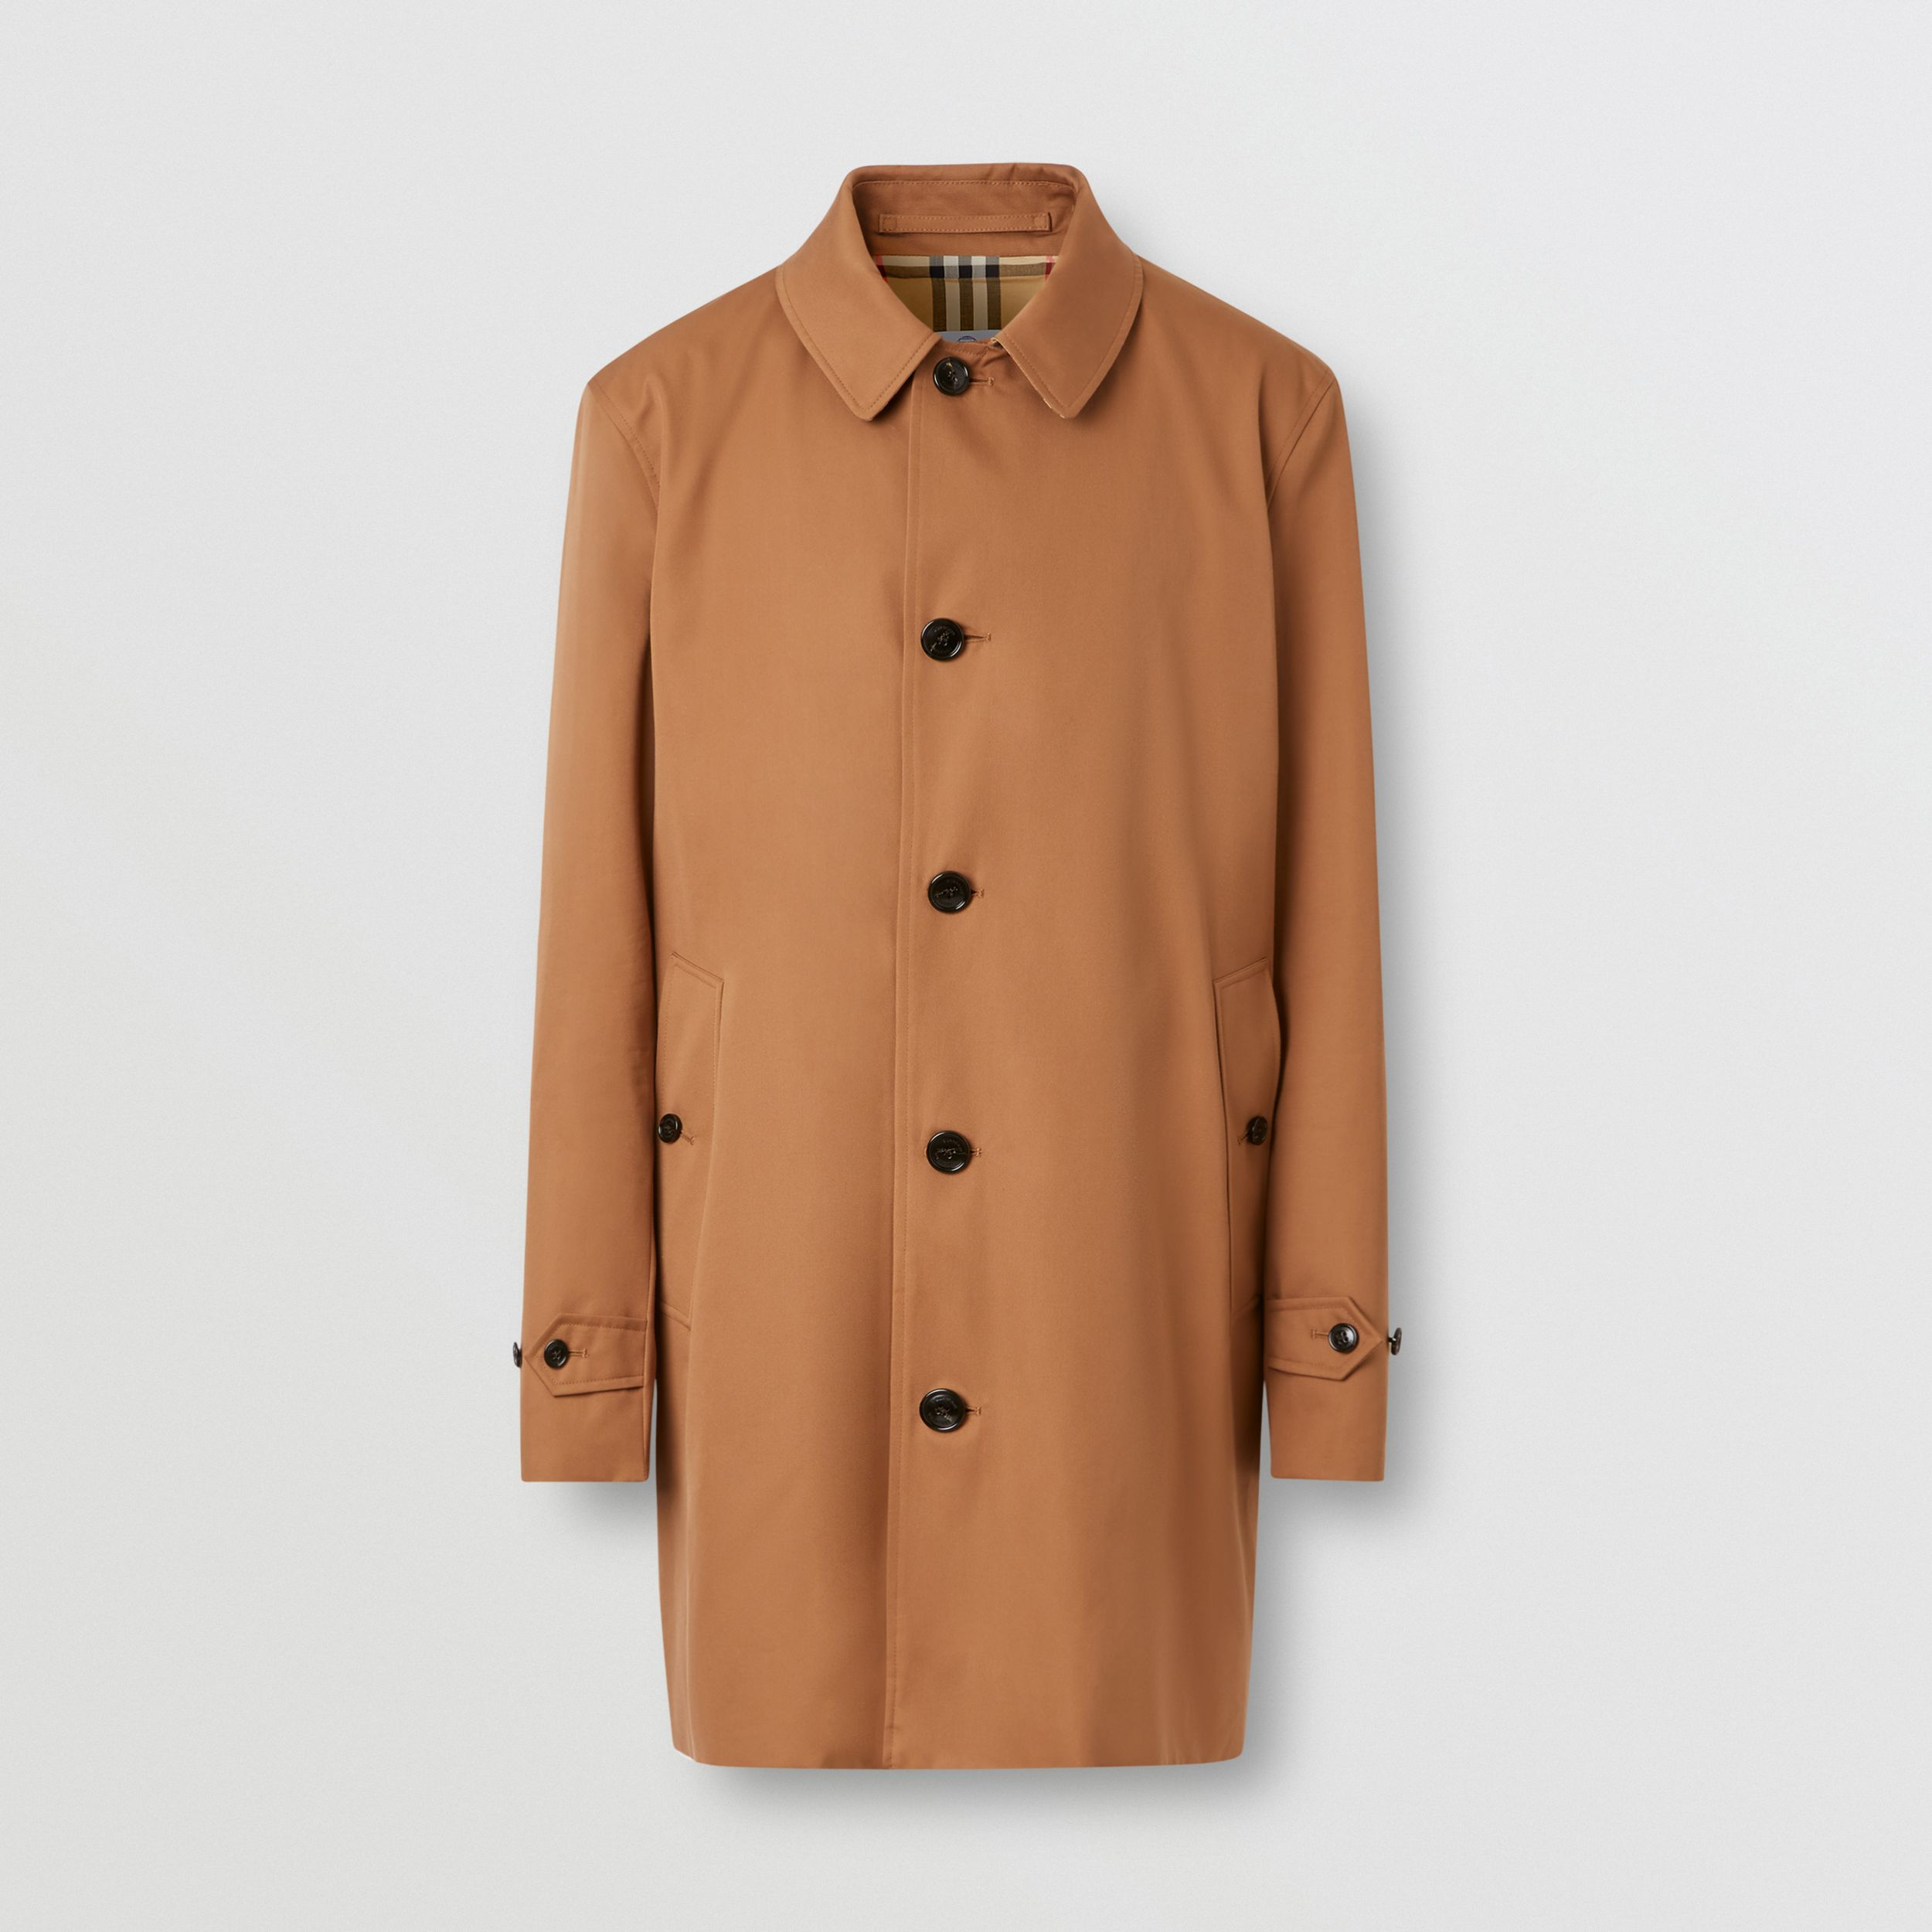 Cotton Gabardine Car Coat in Dusty Caramel - Men | Burberry - 4